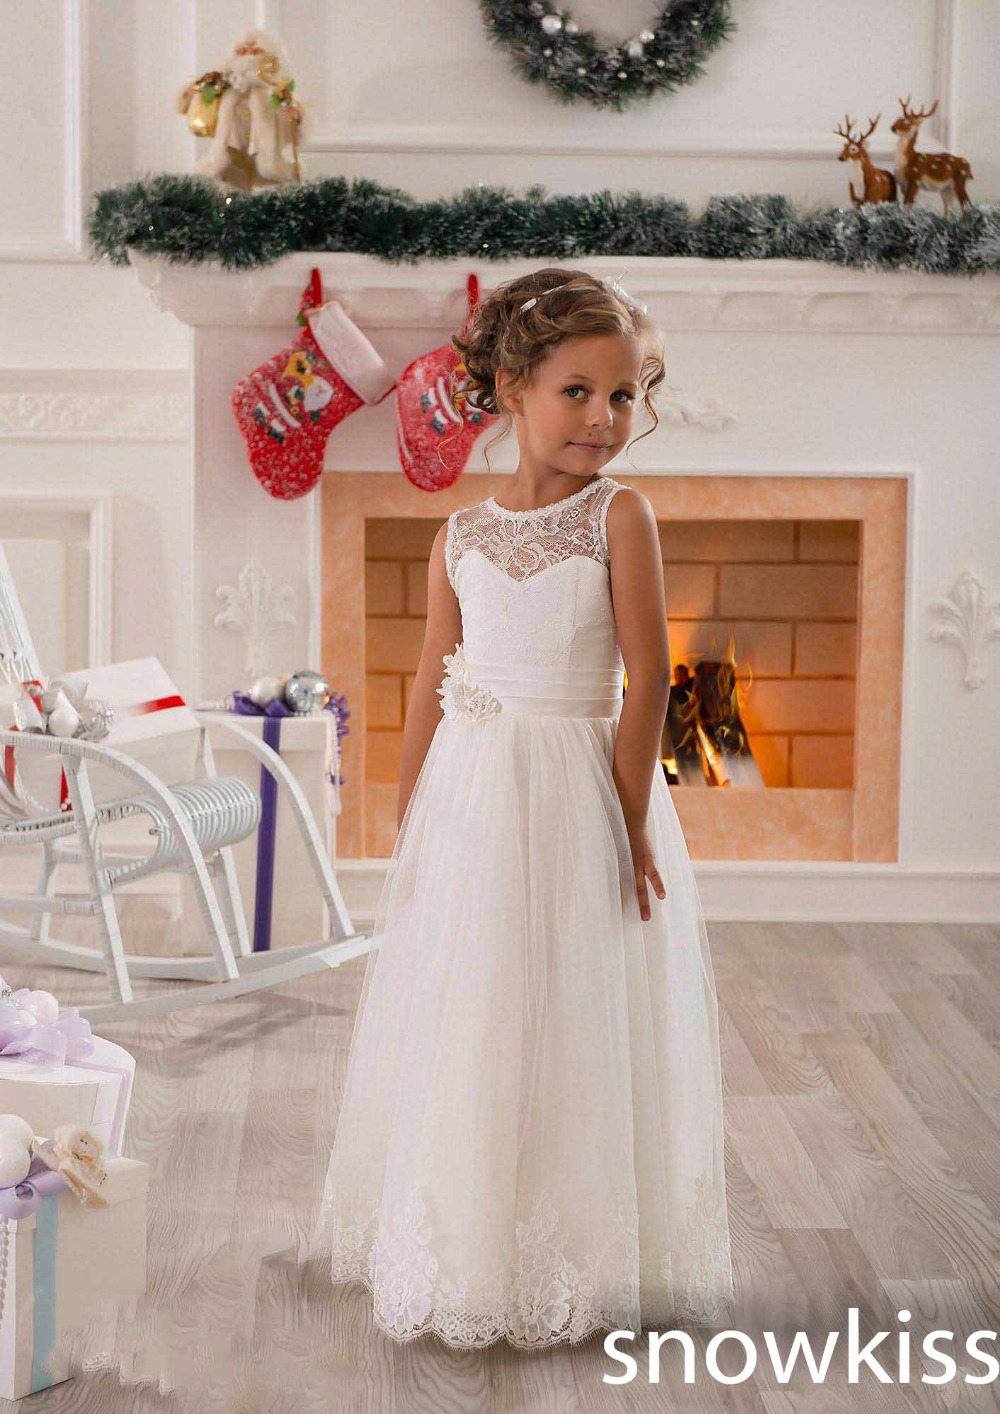 New arrival white/ivory sheer neck lace tulle A-line flower girl dress beautiful kids first communion gowns for wedding occasion maison jules new women s small s white ivory sheer pintuck buttonup blouse $69 page 3